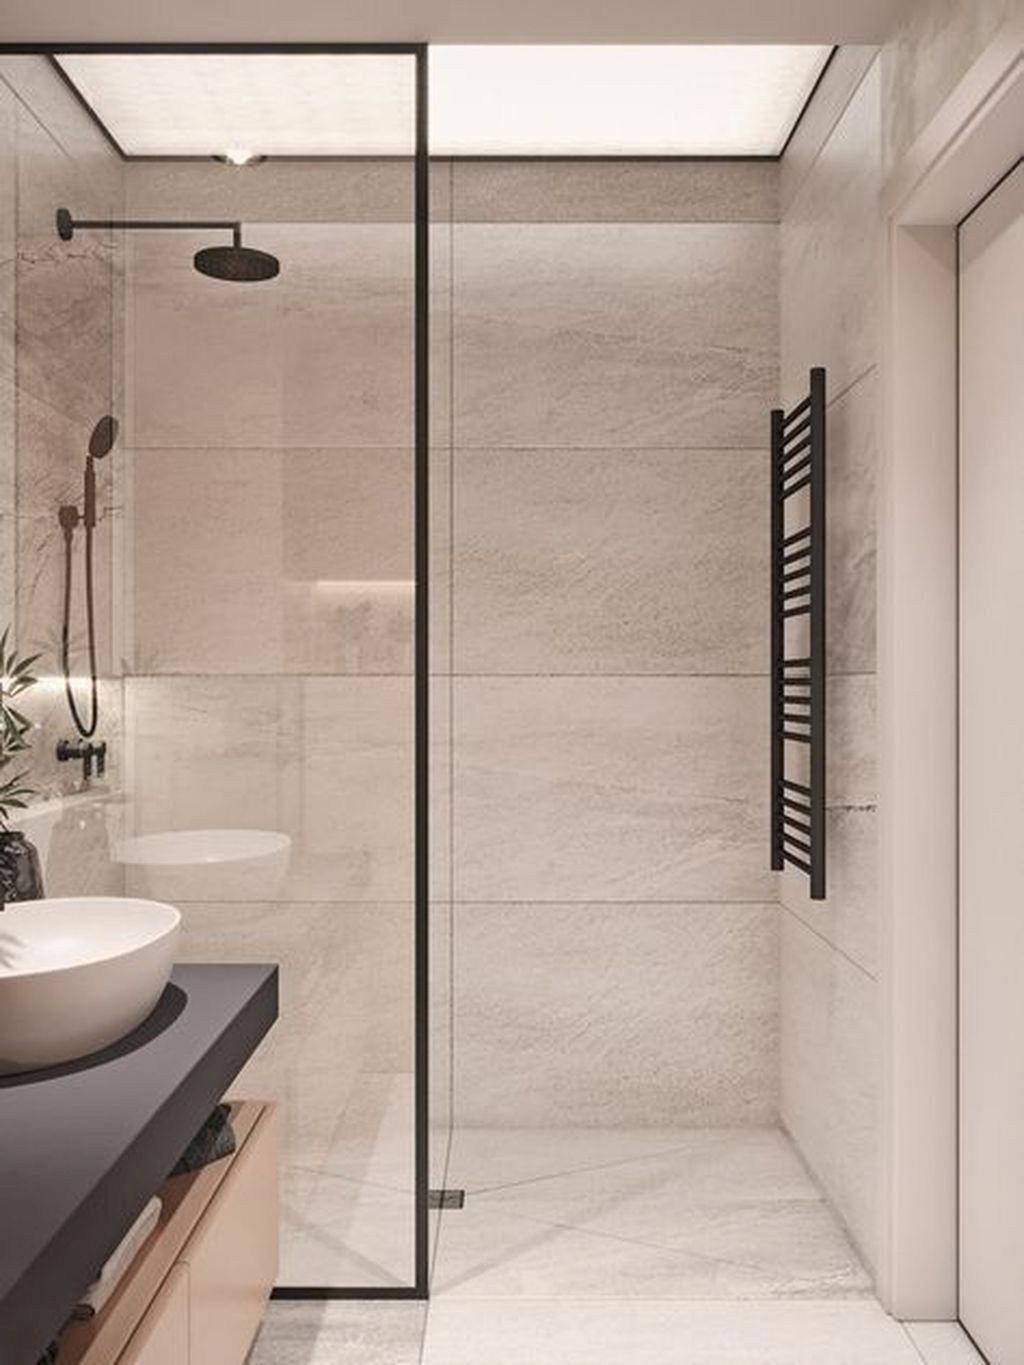 Small Bathroom Ideas There Are So Many Tasks Which Must Be Done With The Bathroom But At Least People Small Bathroom Modern Bathroom Small Bathroom Remodel Latest style bathroom below